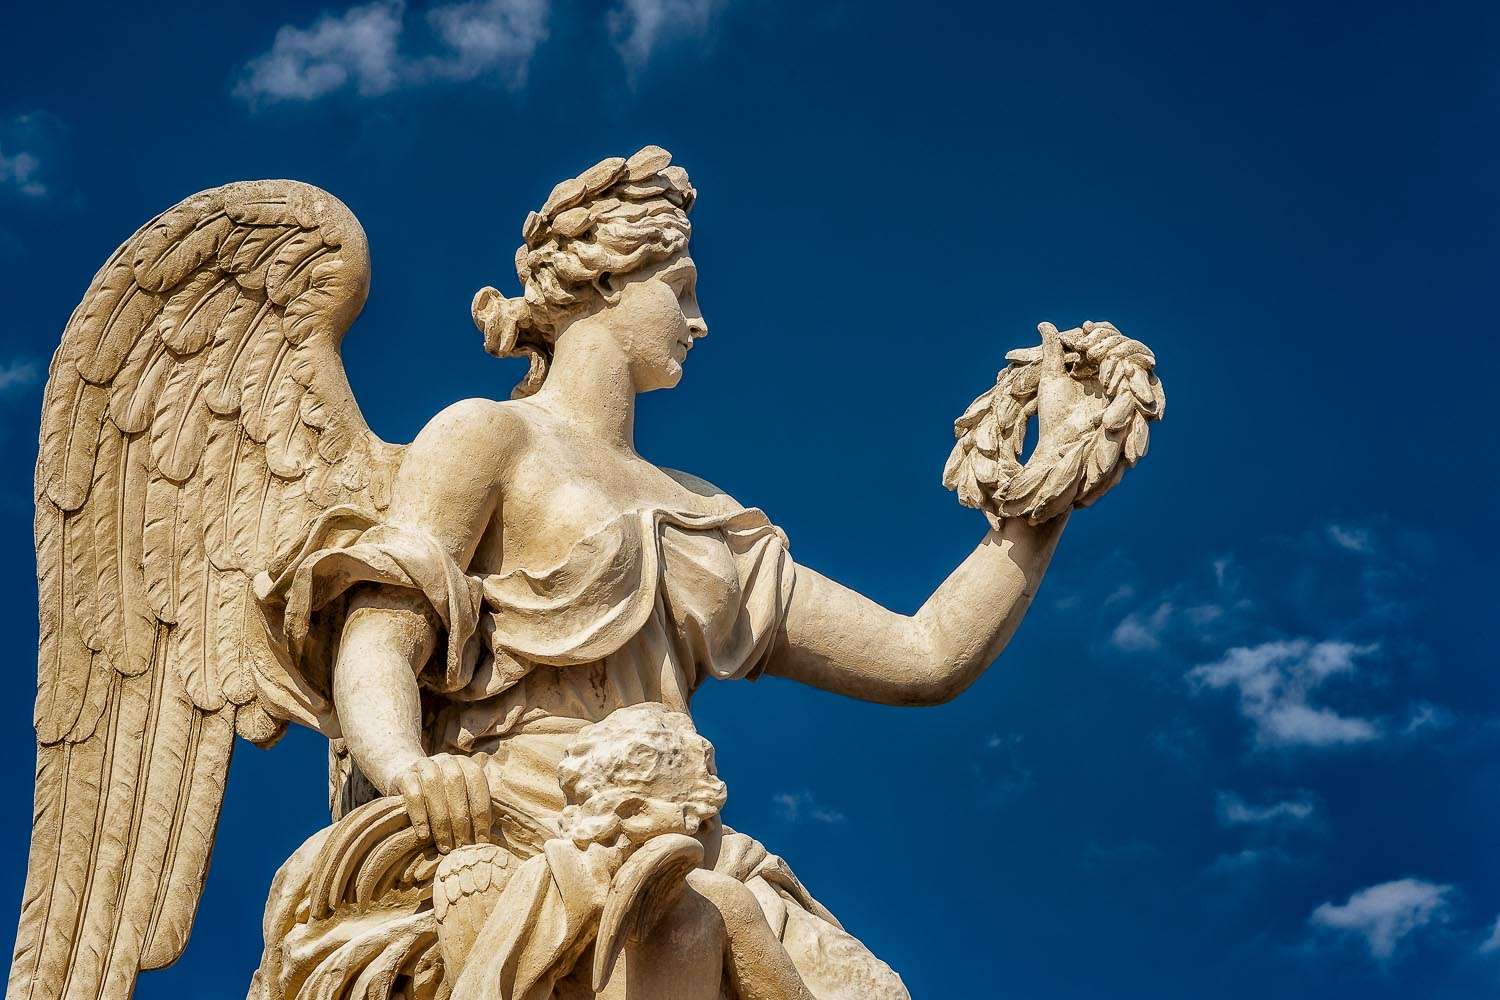 Statue at Versailles   , Paris depicting an    angel and wreath    against a deep blue sky.